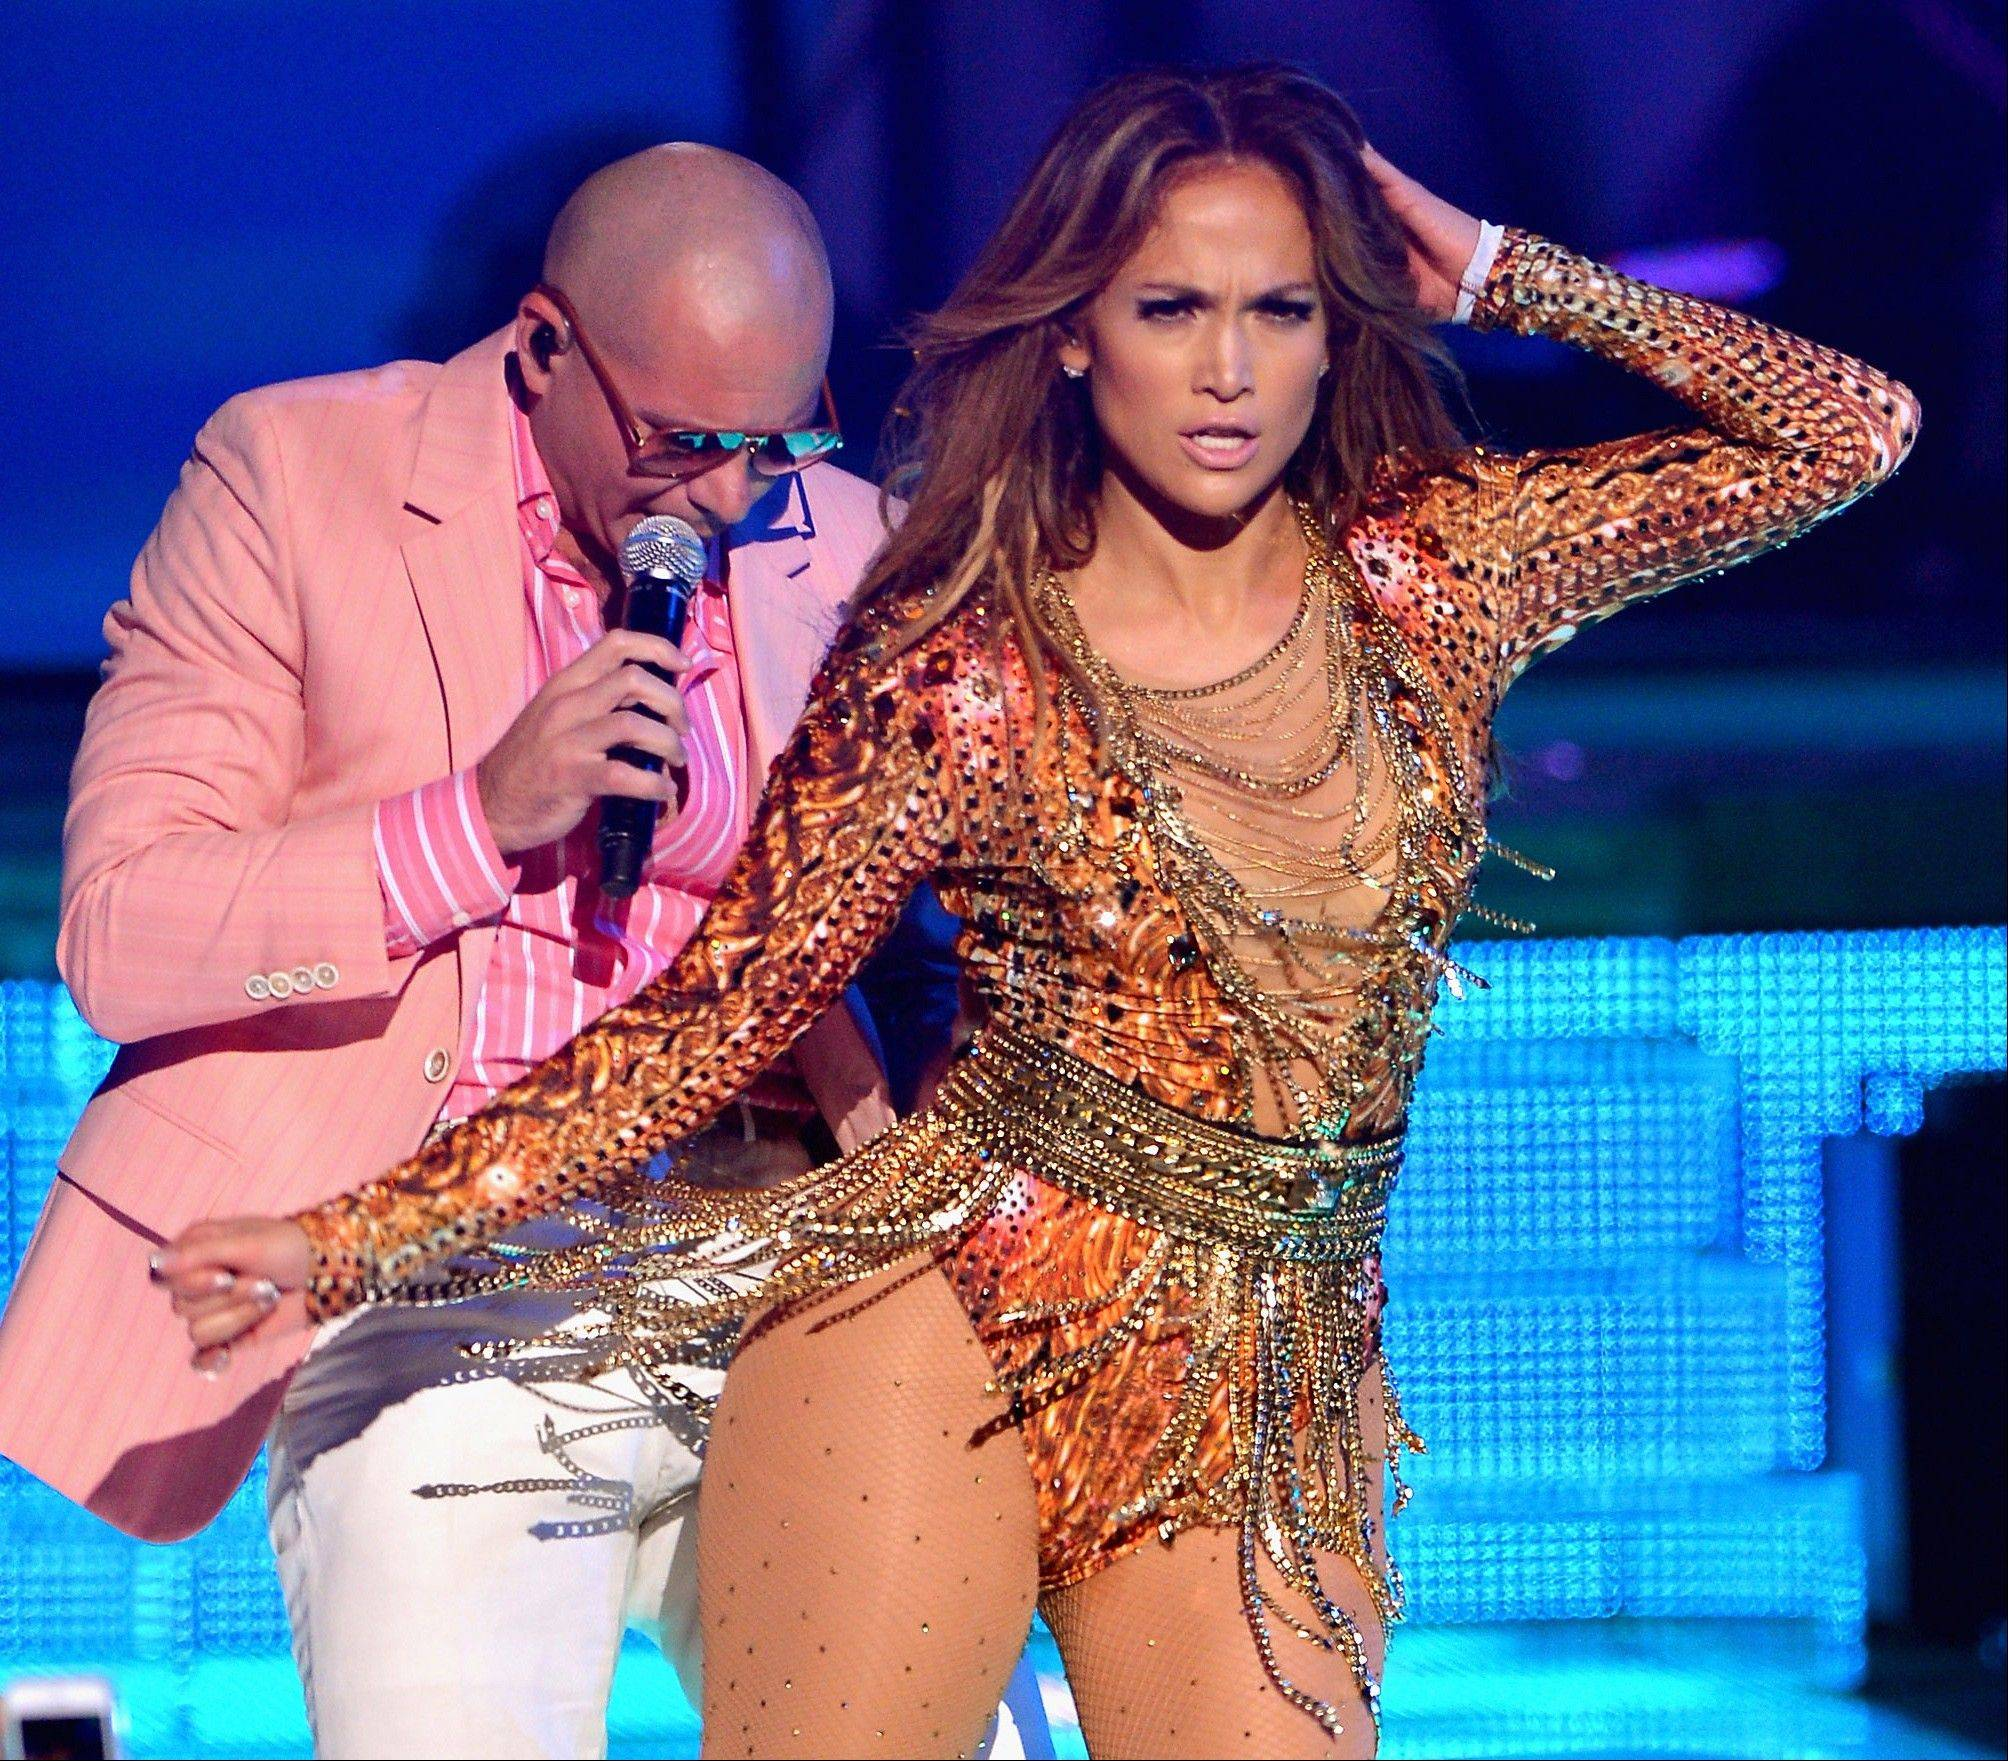 Associated Press/July 18, 2013, from Univision Jennifer Lopez and Pitbull perform during the awards for �Premios Juventud� held at the BankUnited Center at the University of Miami in Coral Gables, Fla. For the first time, the Spanish-language Univision network will have a larger audience than its English counterparts for a full month in the youthful demographic that television advertisers are most eager to reach.